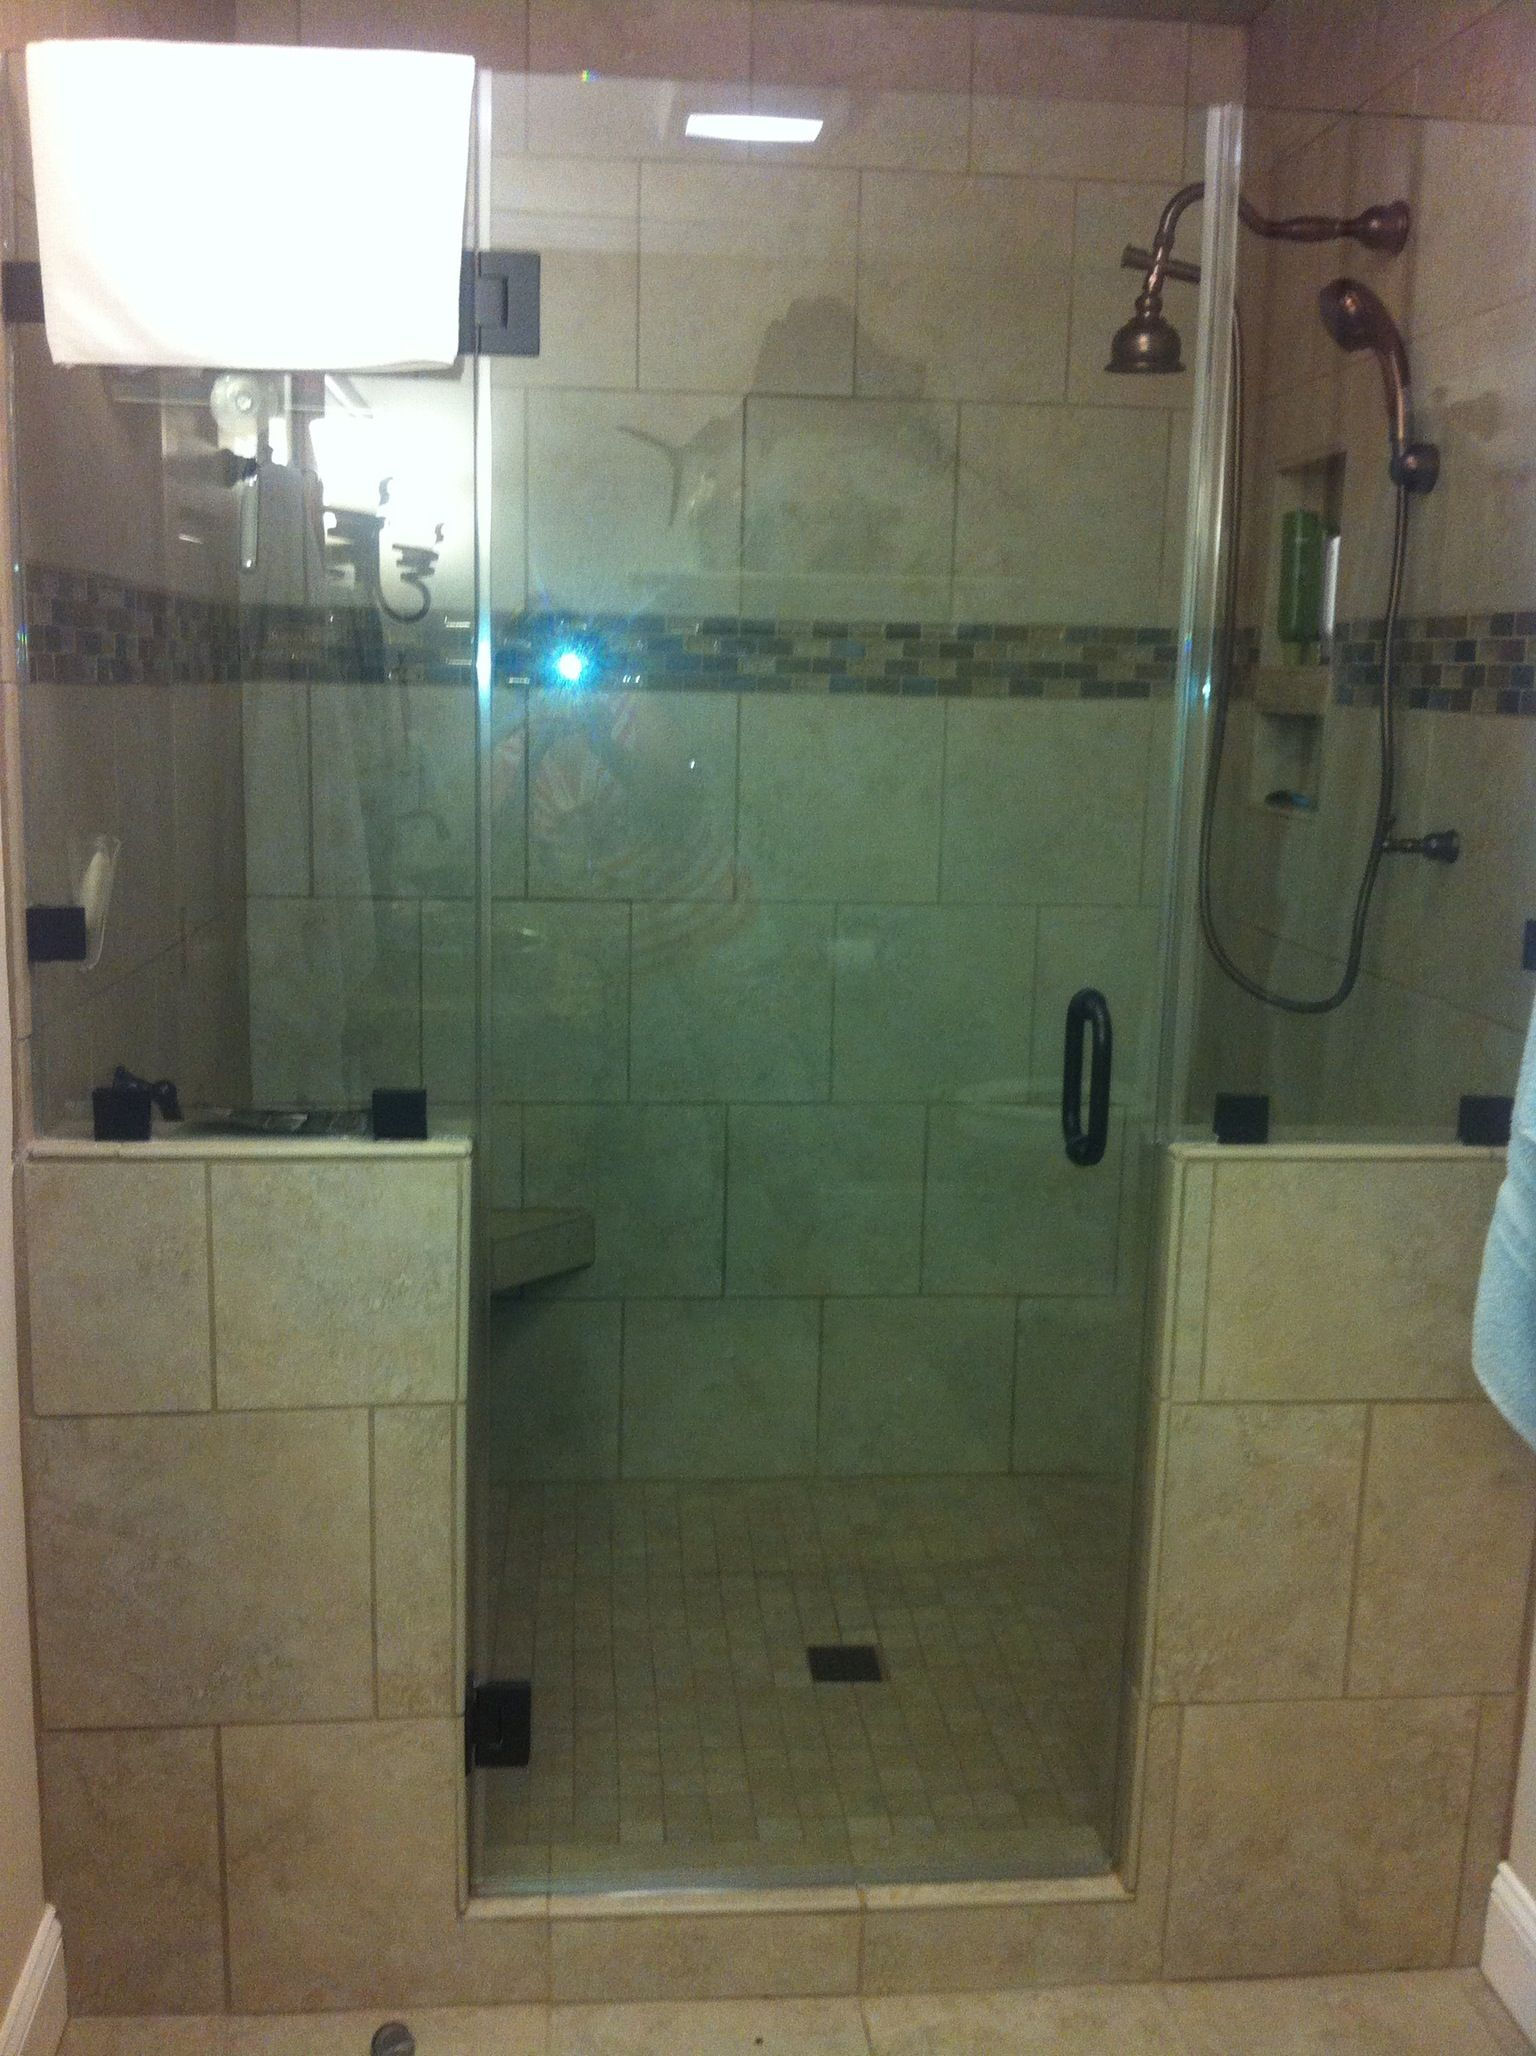 4' x 6' tiled shower- definitely adding in a second shower ...